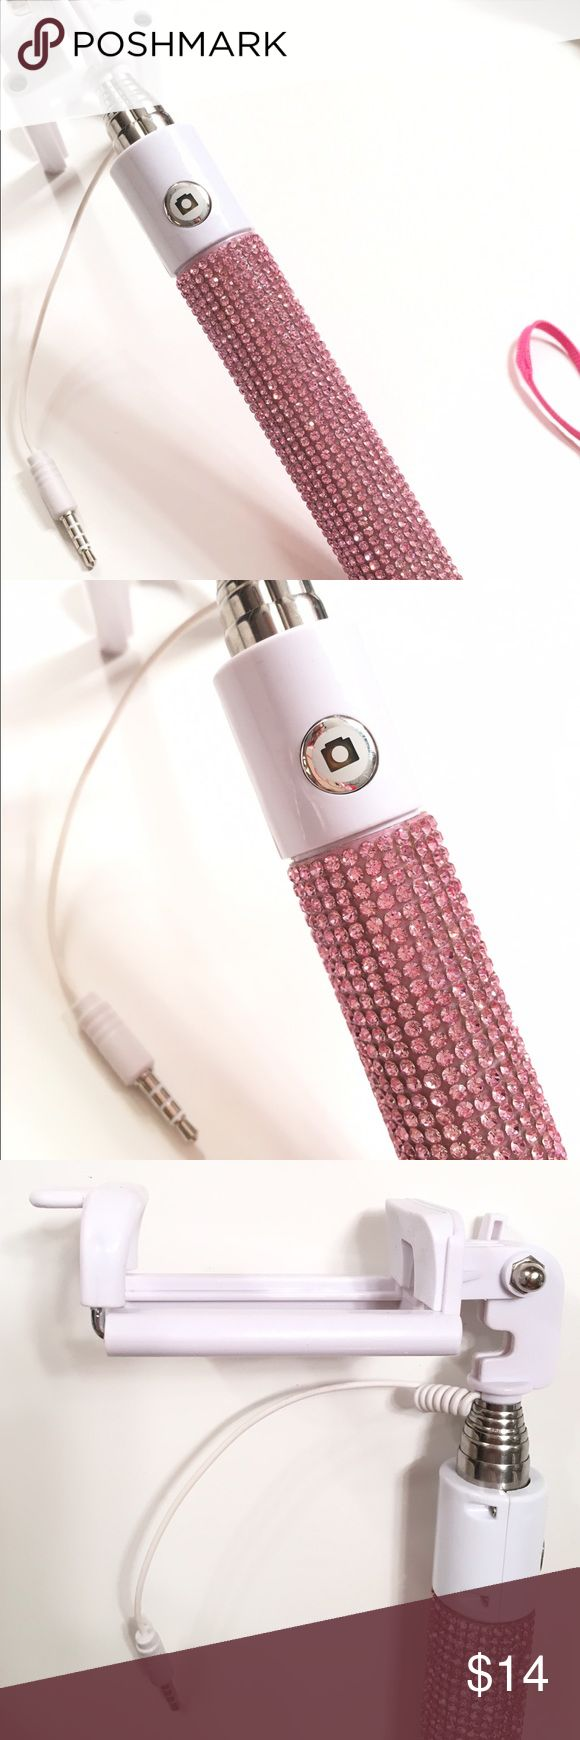 Rhinestone Selfie Stick Brand new never used Large selfie stick. Full extends about 3 feet. No rhinestones missing or scratching anywhere. In perfect working order. Make an offer! Other